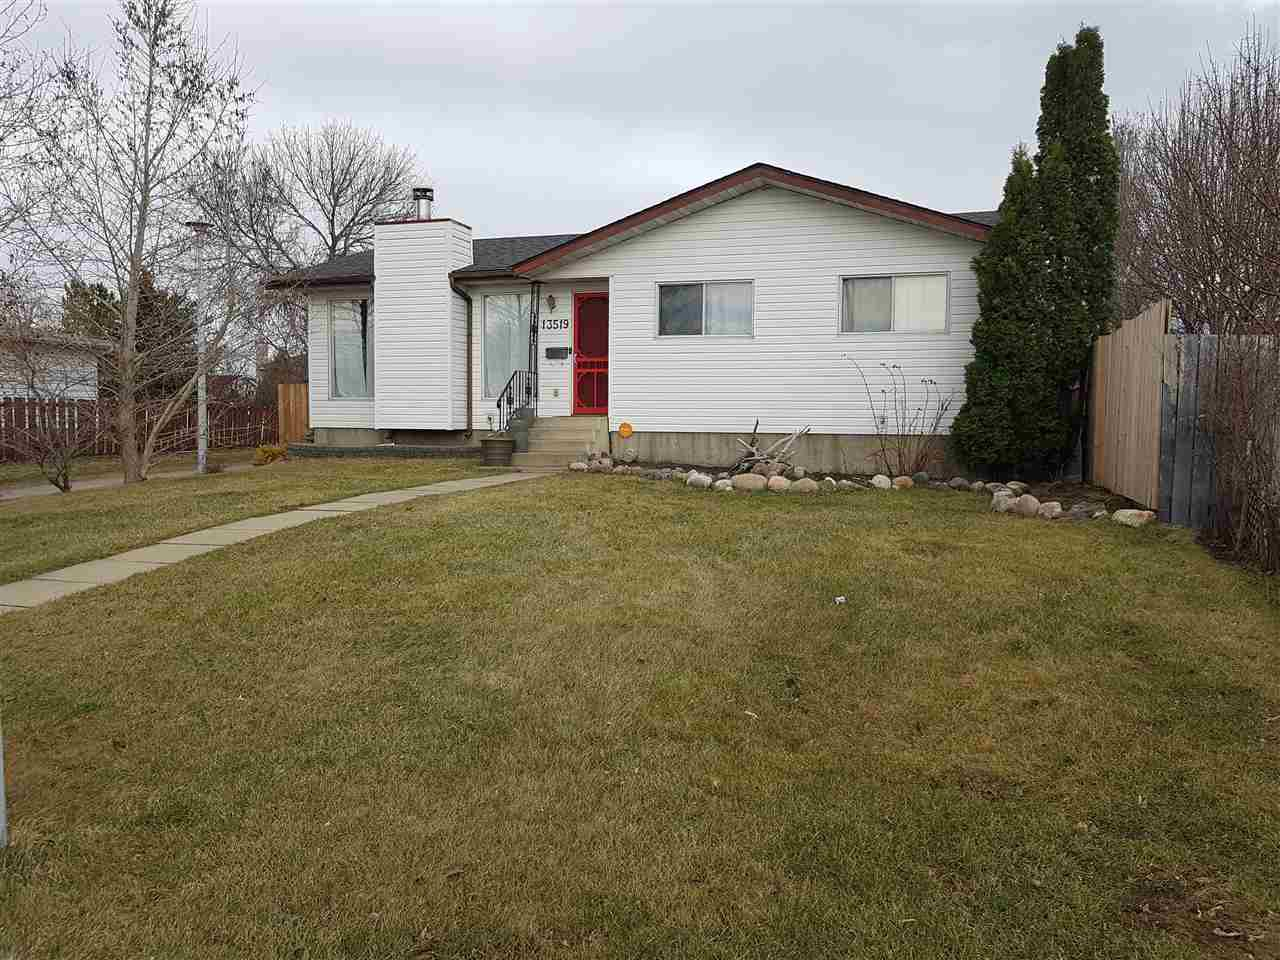 Main Photo: 13519 24 Street in Edmonton: Zone 35 House for sale : MLS®# E4195277